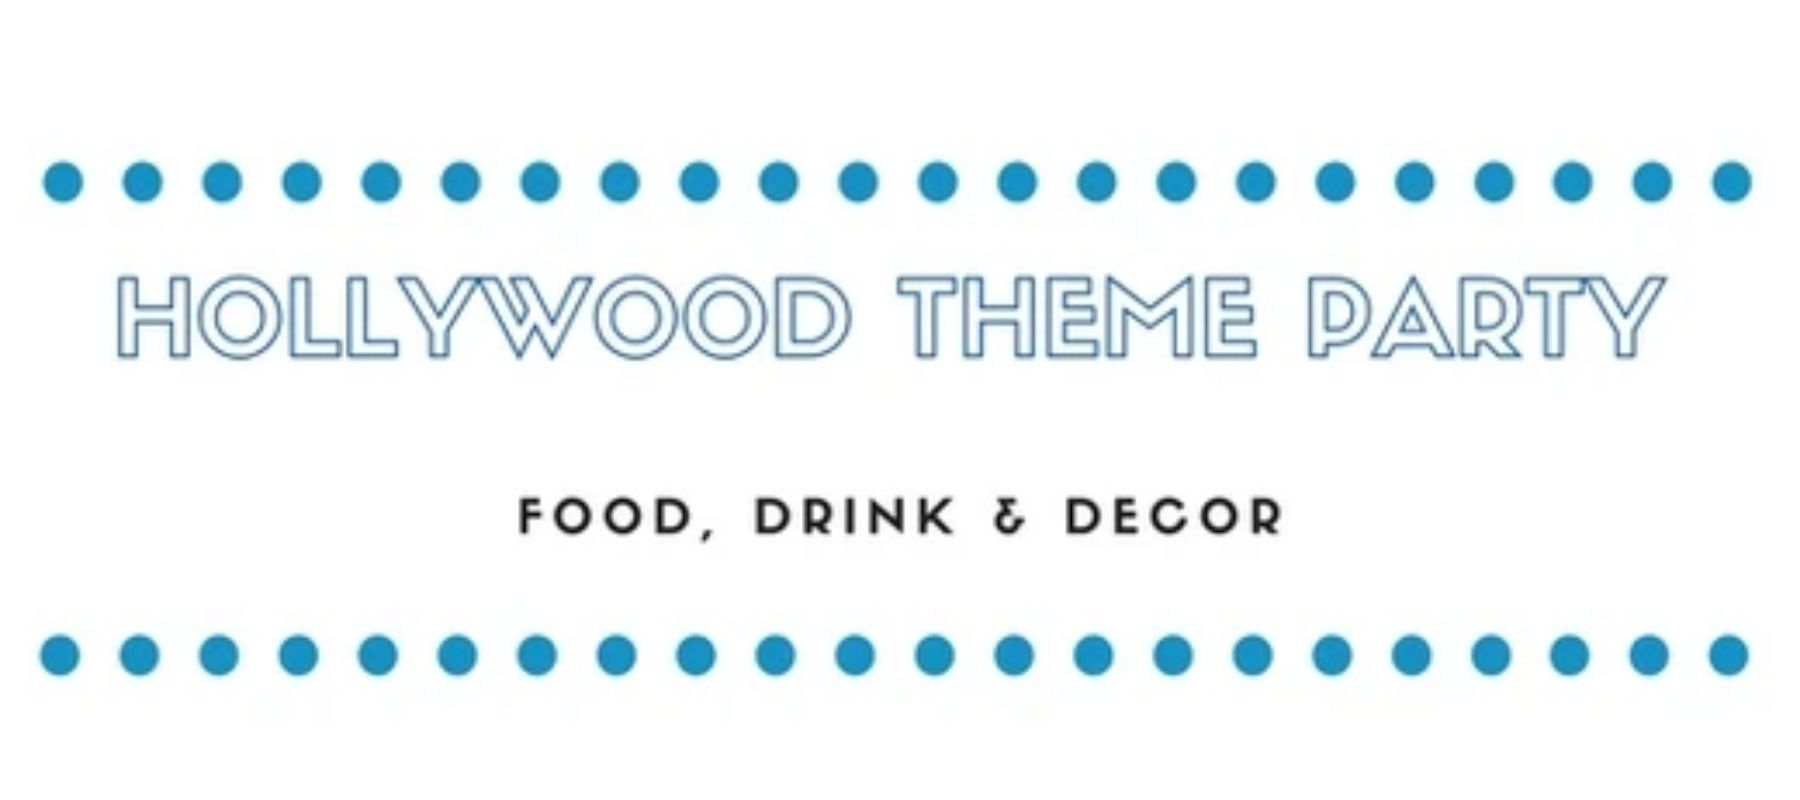 Hollywood Theme Party Sign by Myntz! Breathmints